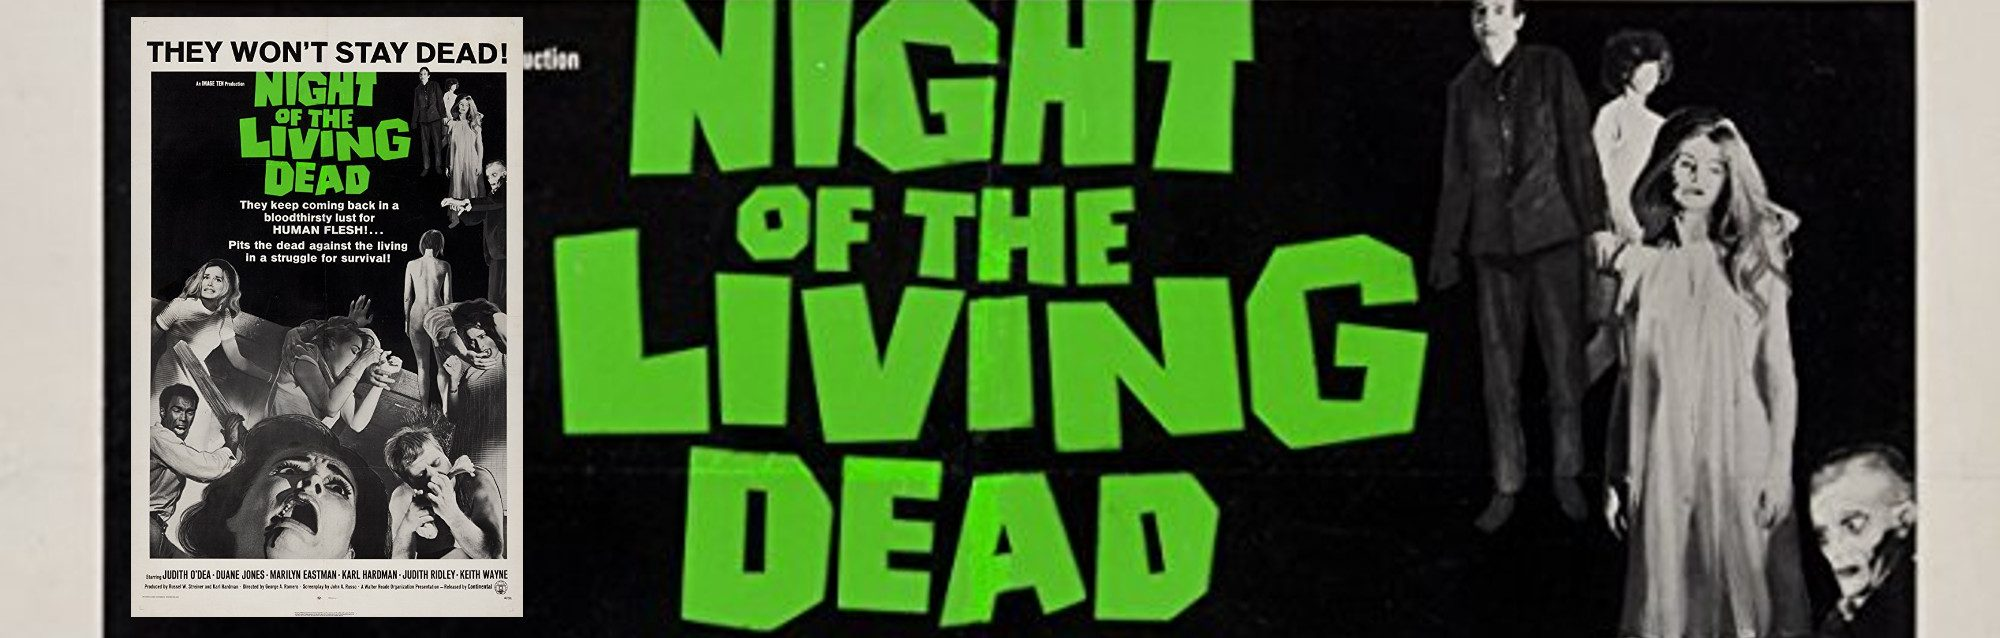 N ight of the Living Dead Banner